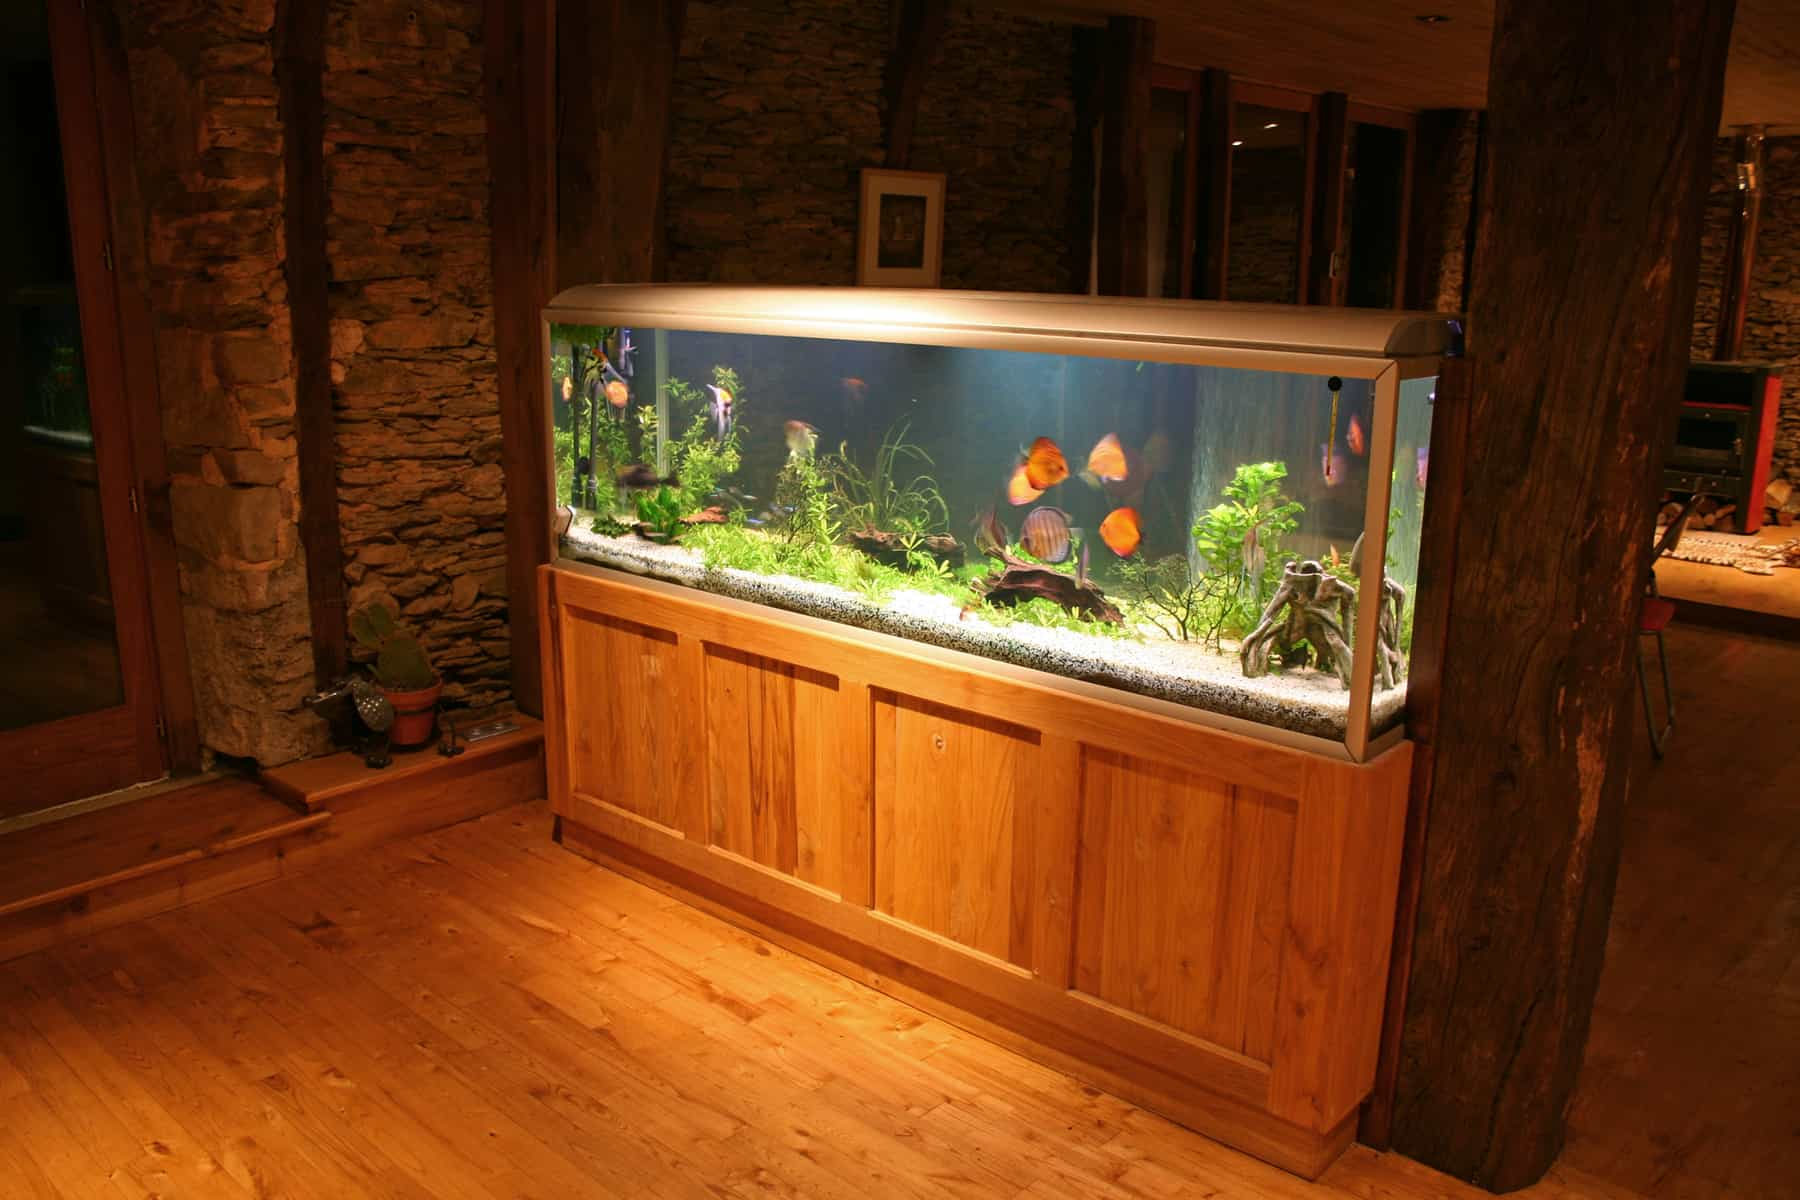 side view of 55 gallon fish tank during at night